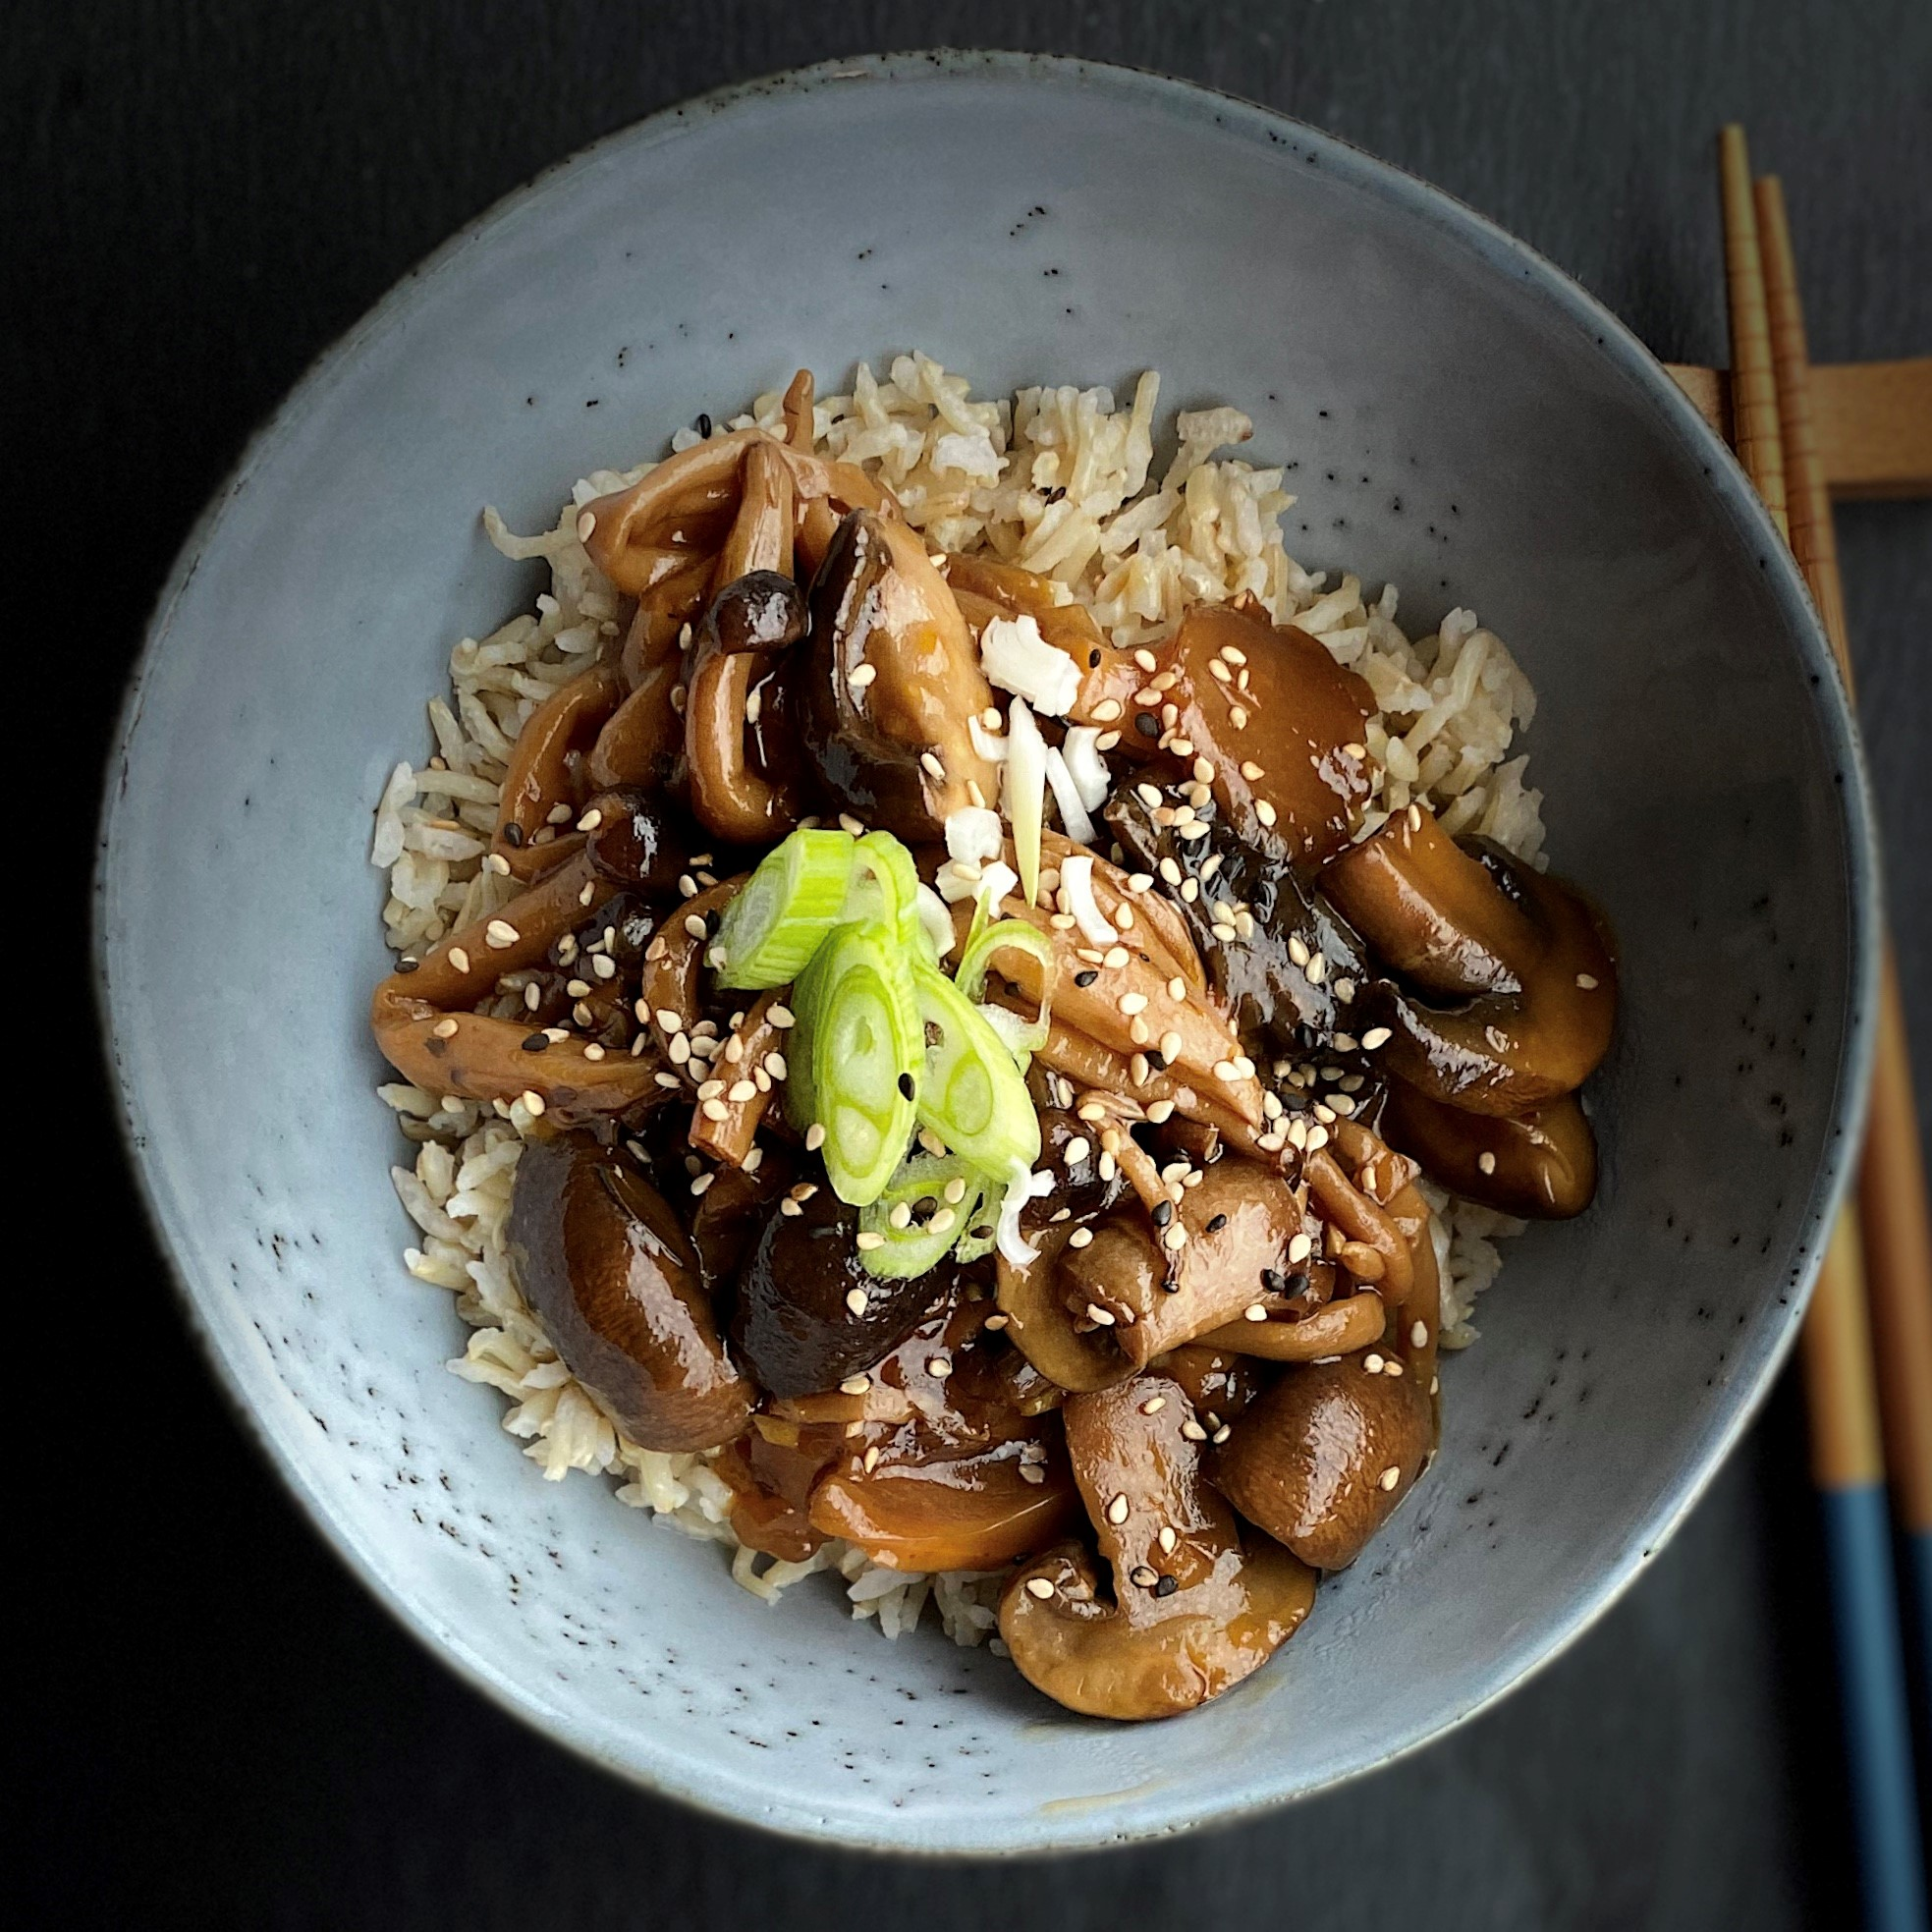 "Here's a healthy vegan take on Korean bulgogi. Mushrooms provide a savory meatlike texture here. ""Marinated mushrooms are cooked in the Instant Pot®, creating a flavorful vegan bulgogi you can serve over rice or noodles,"" says Buckwheat Queen."